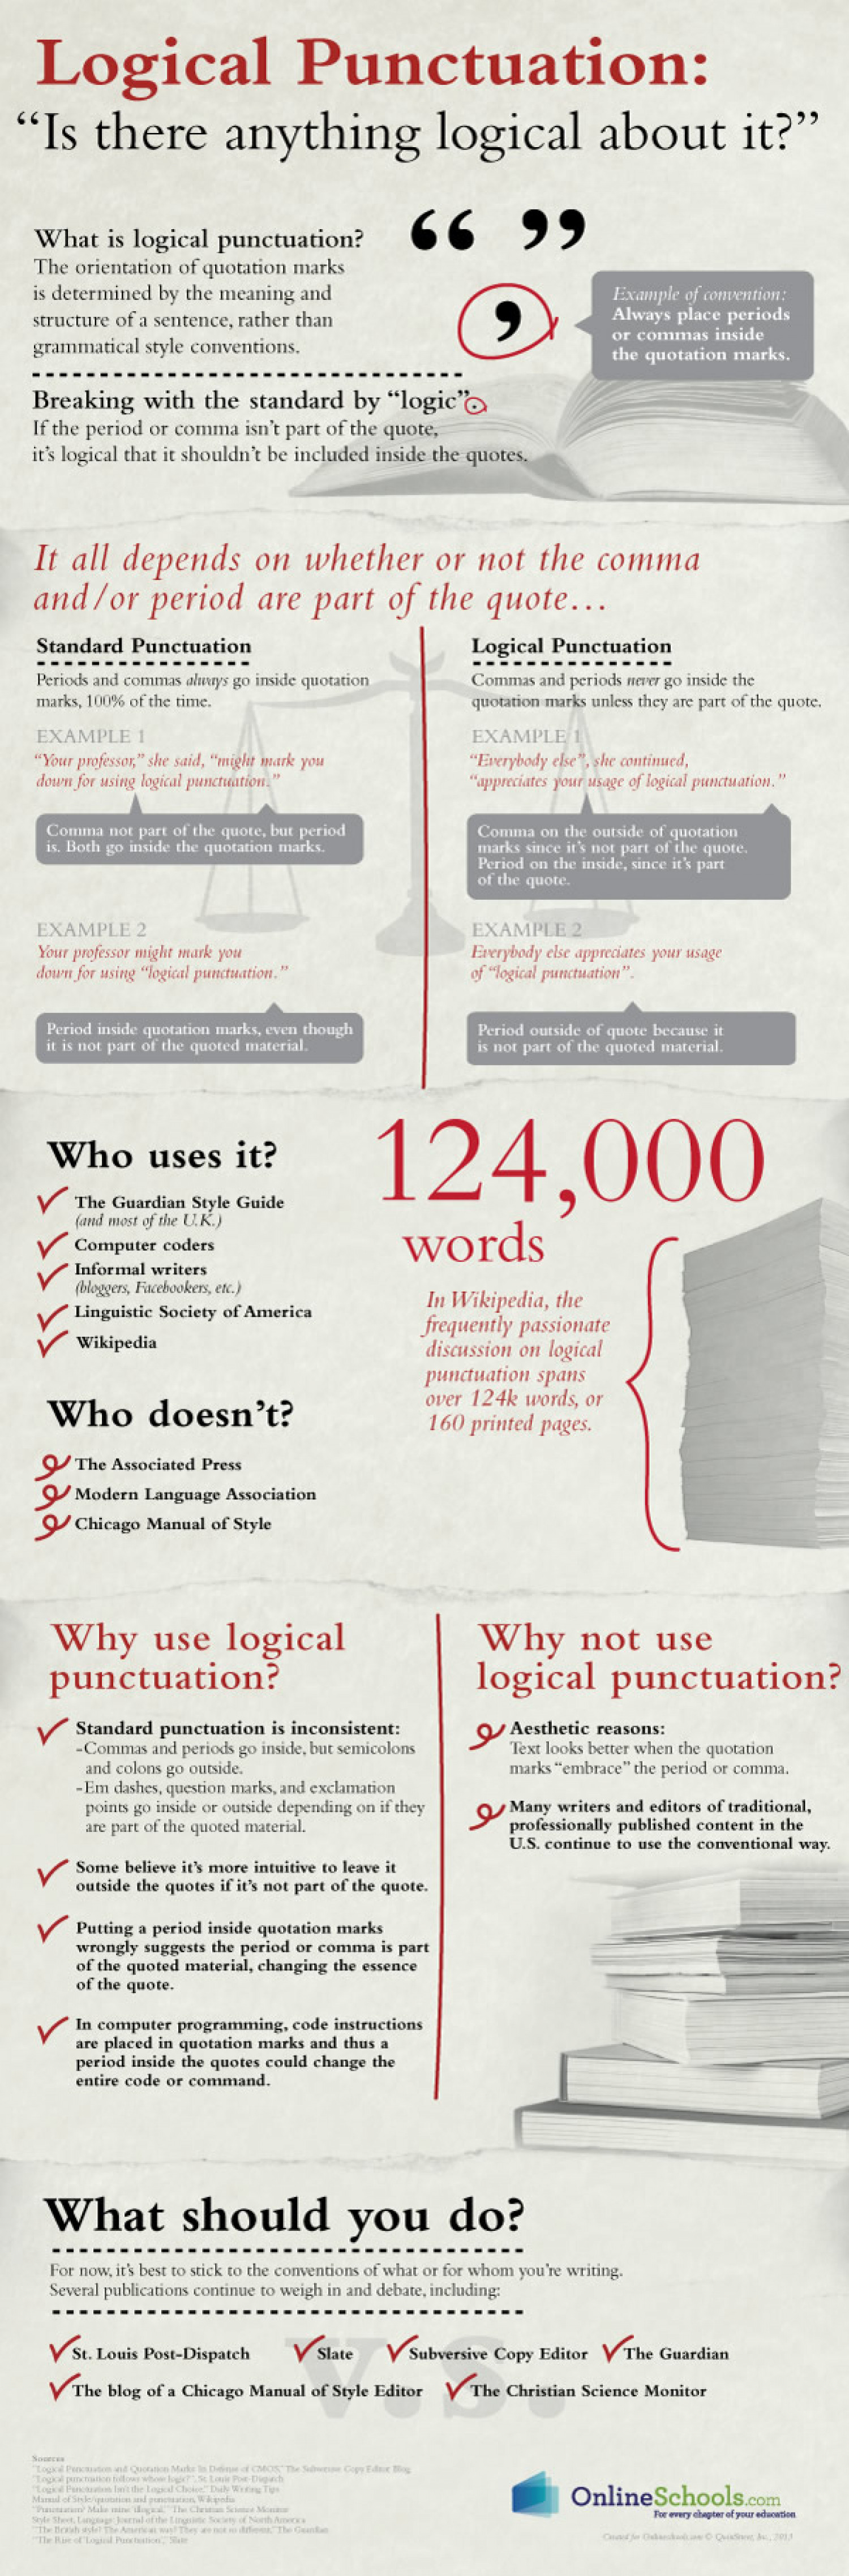 "Logical Punctuation: ""Is there anything 'logical' about it?"" Infographic"